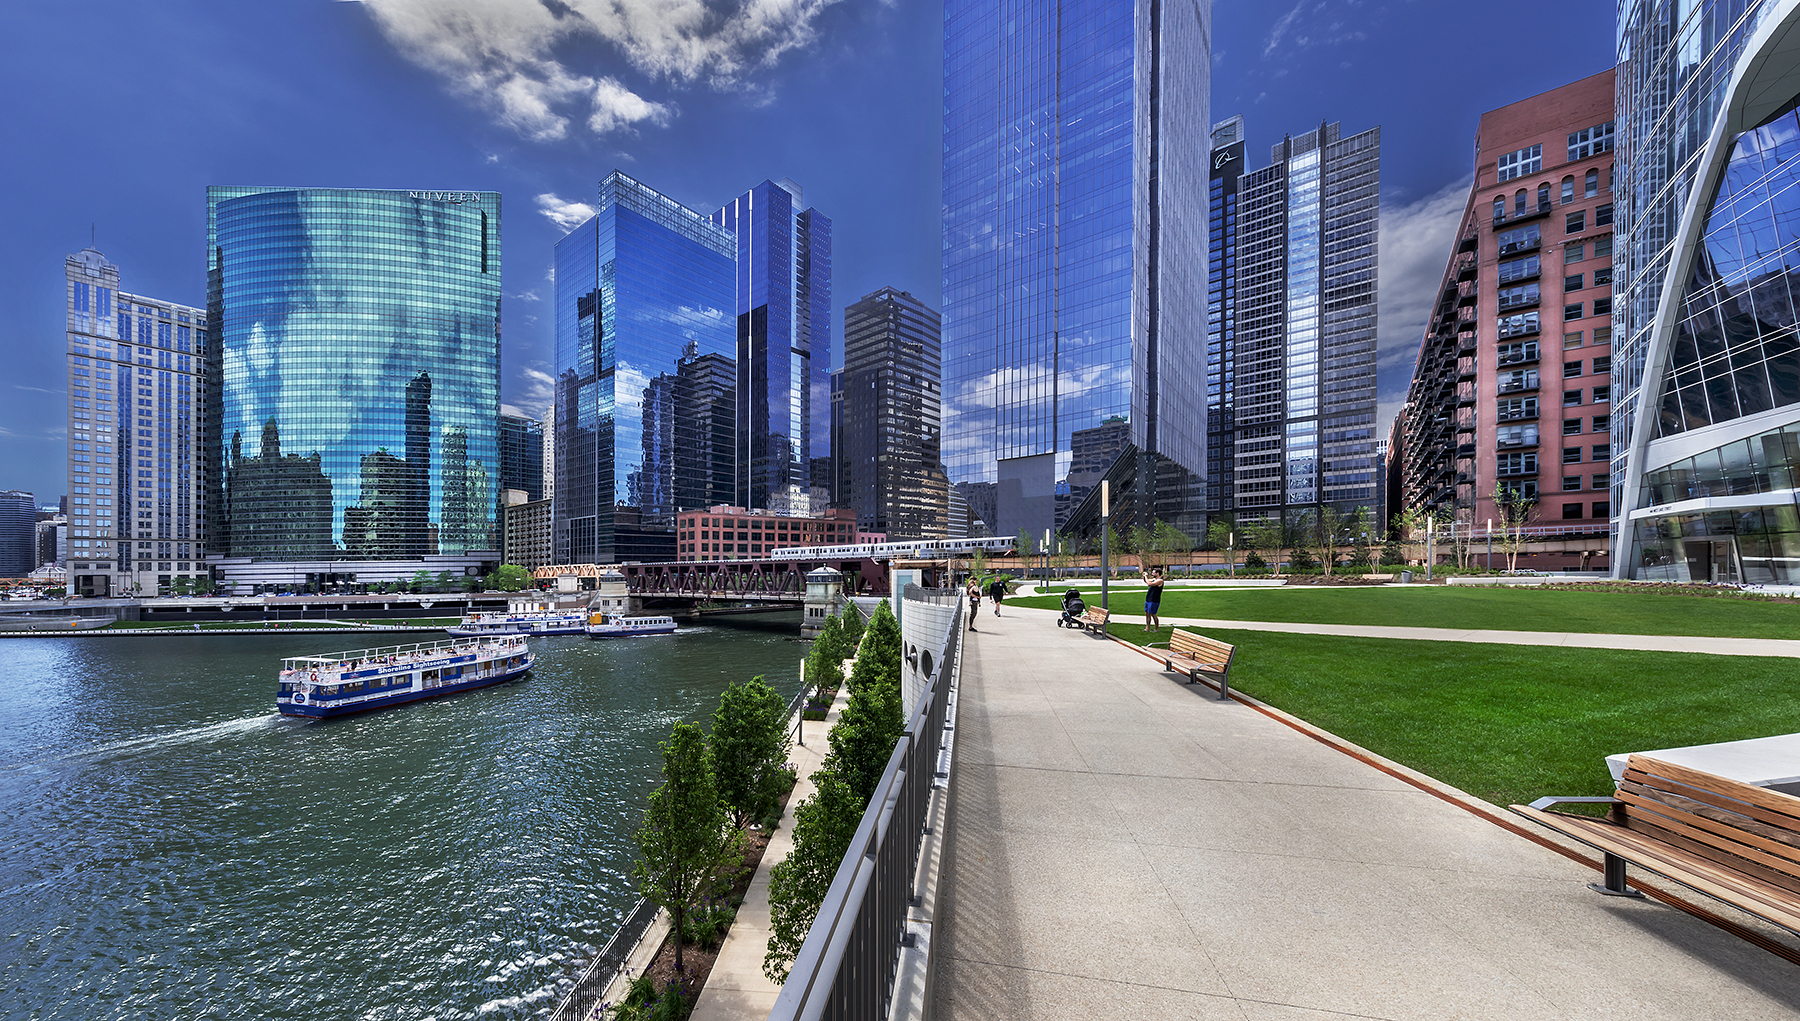 River_Point_Chicago_Illinois_PlazaWithVi